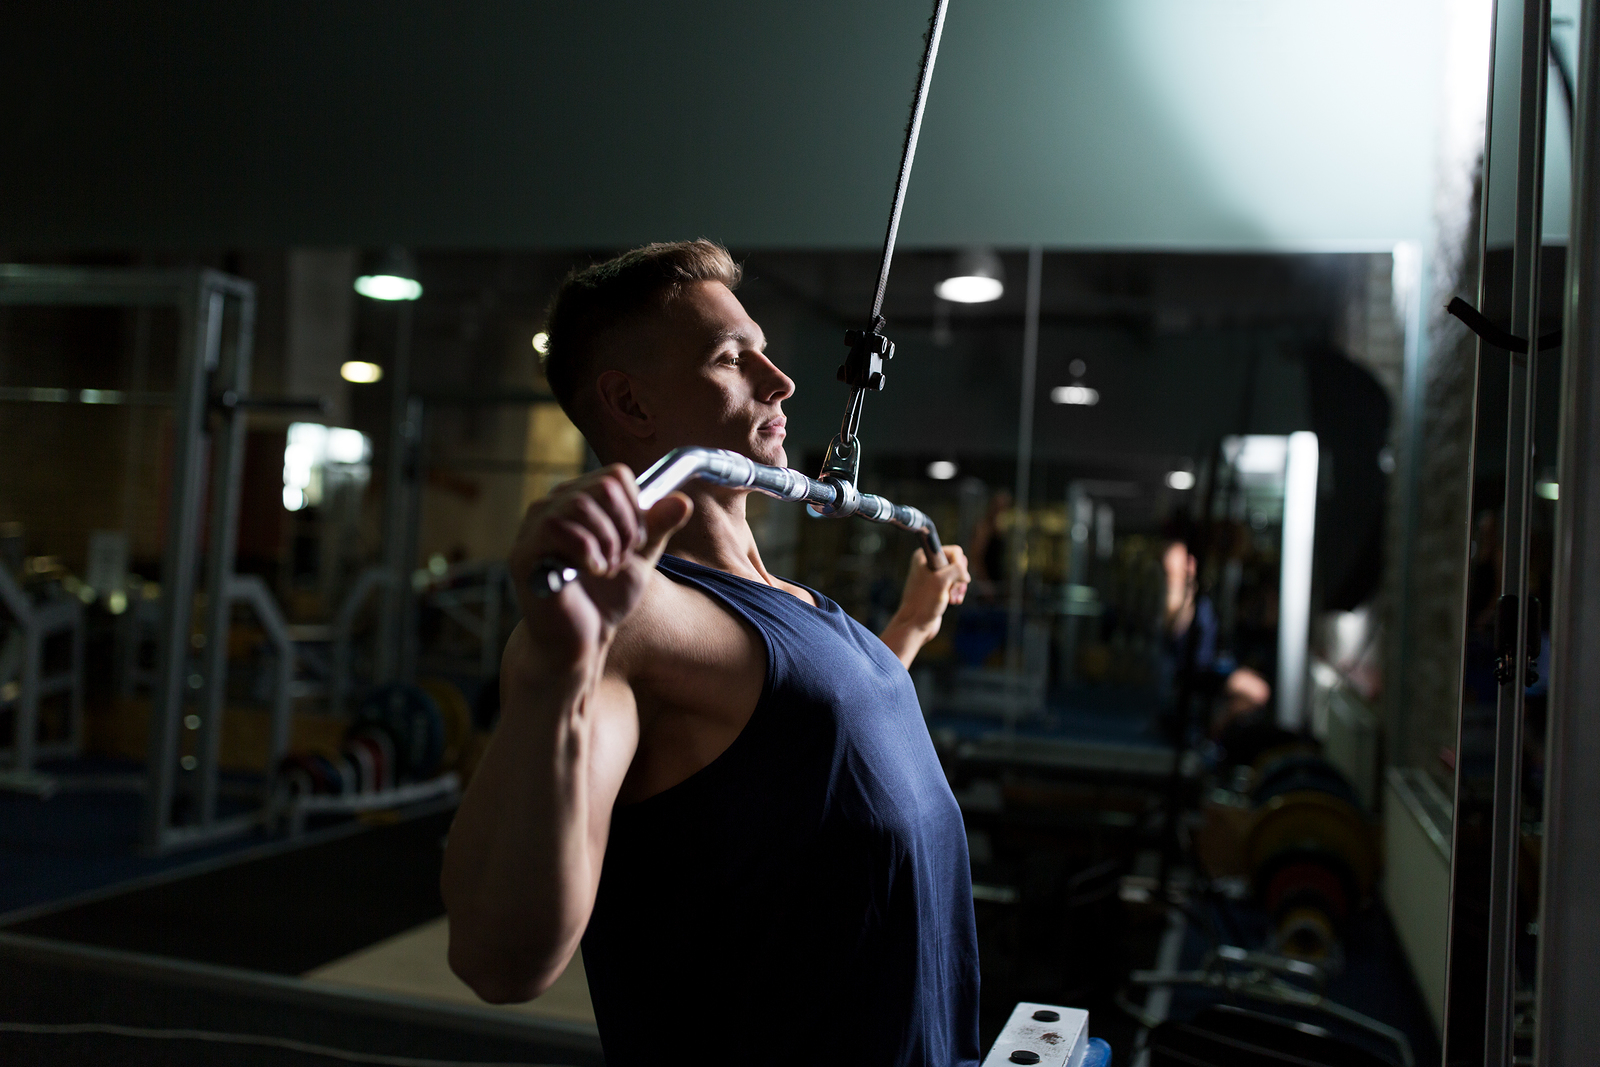 Lat pulldown for bicep training